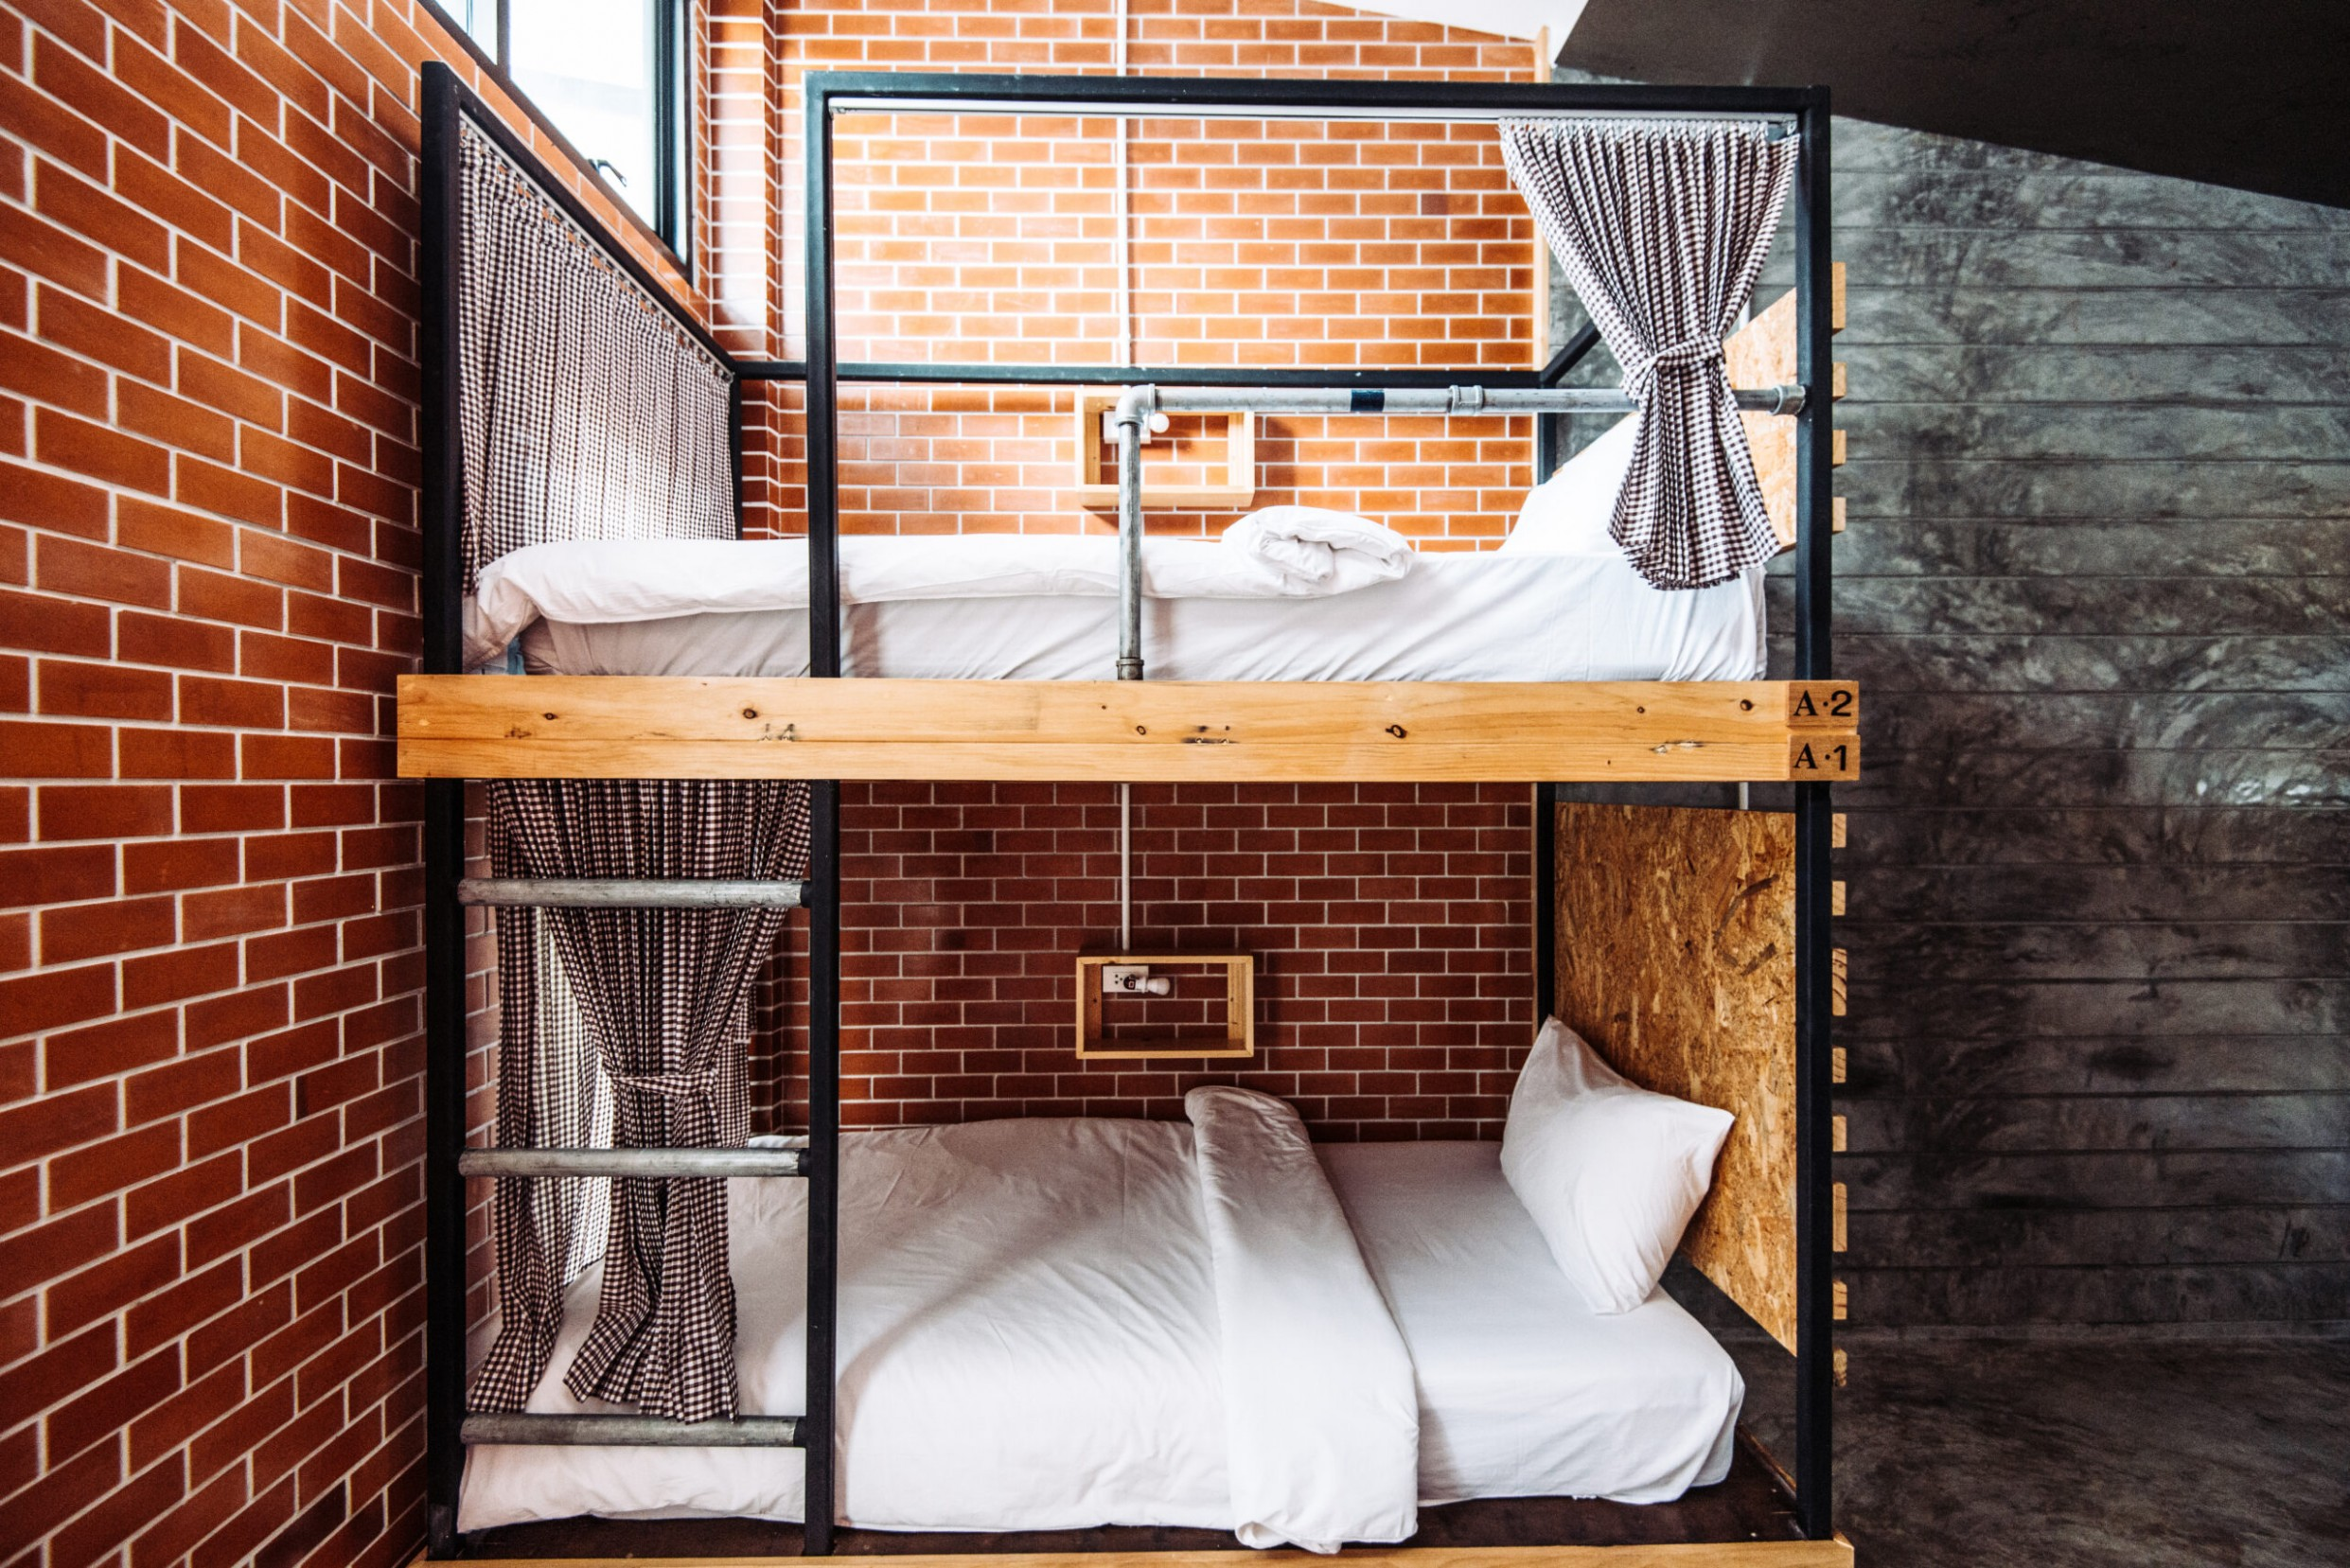 10 Fresh Space-Saving Bunk Beds Ideas For Your Home - Bedroom Ideas Double Deck